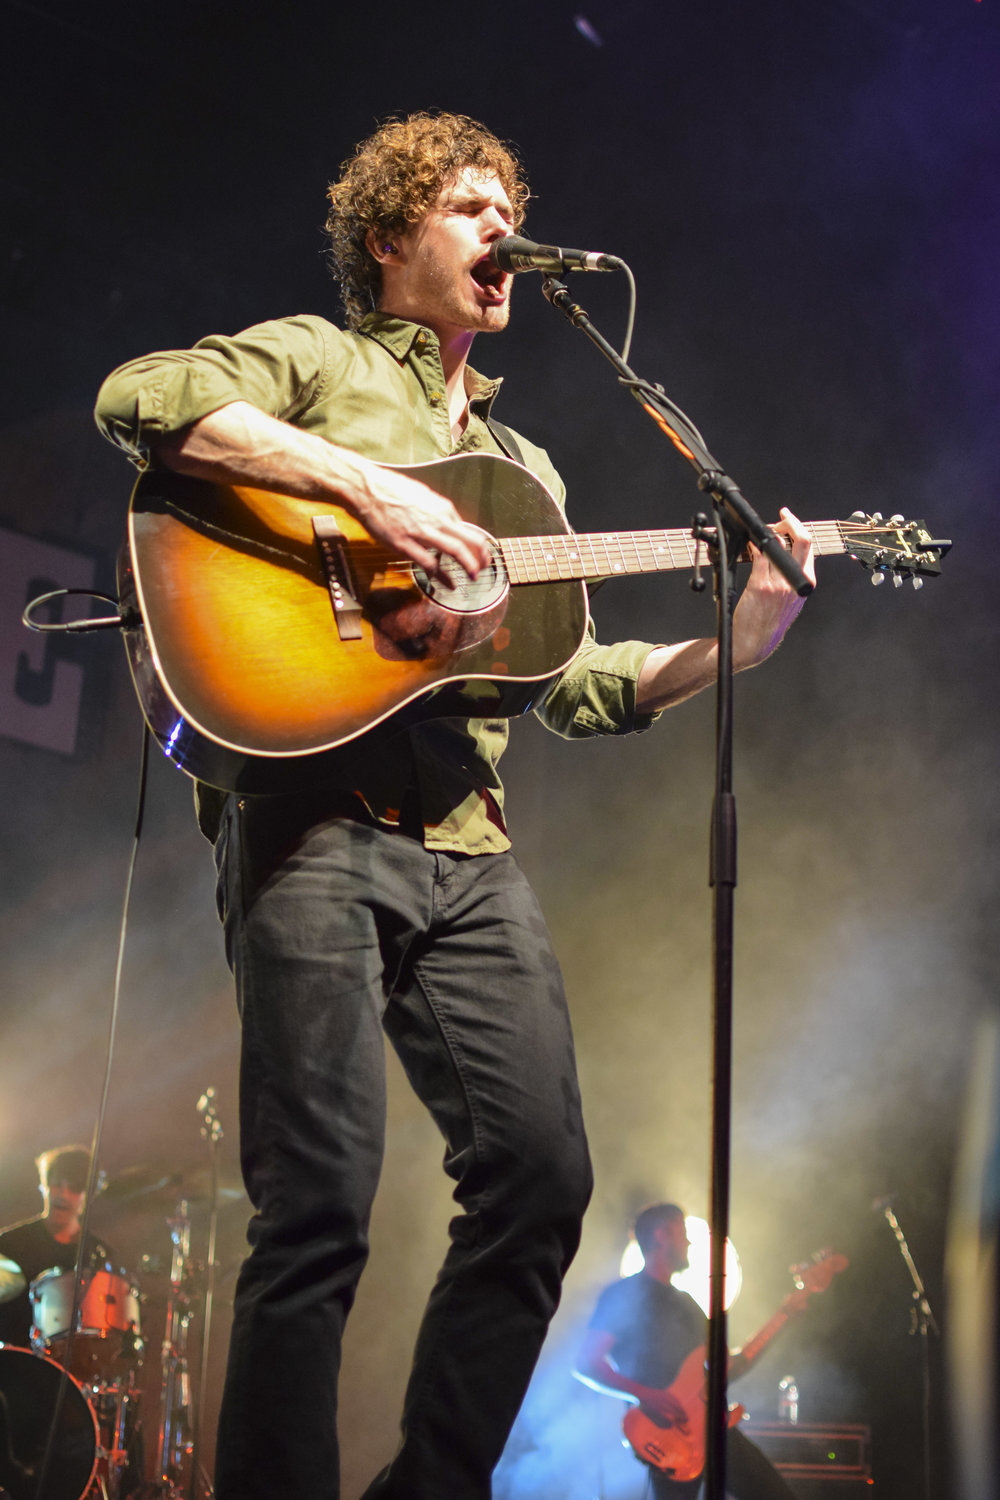 VanceJoy_Feb2016DSC_0182_Edited_Small.jpg